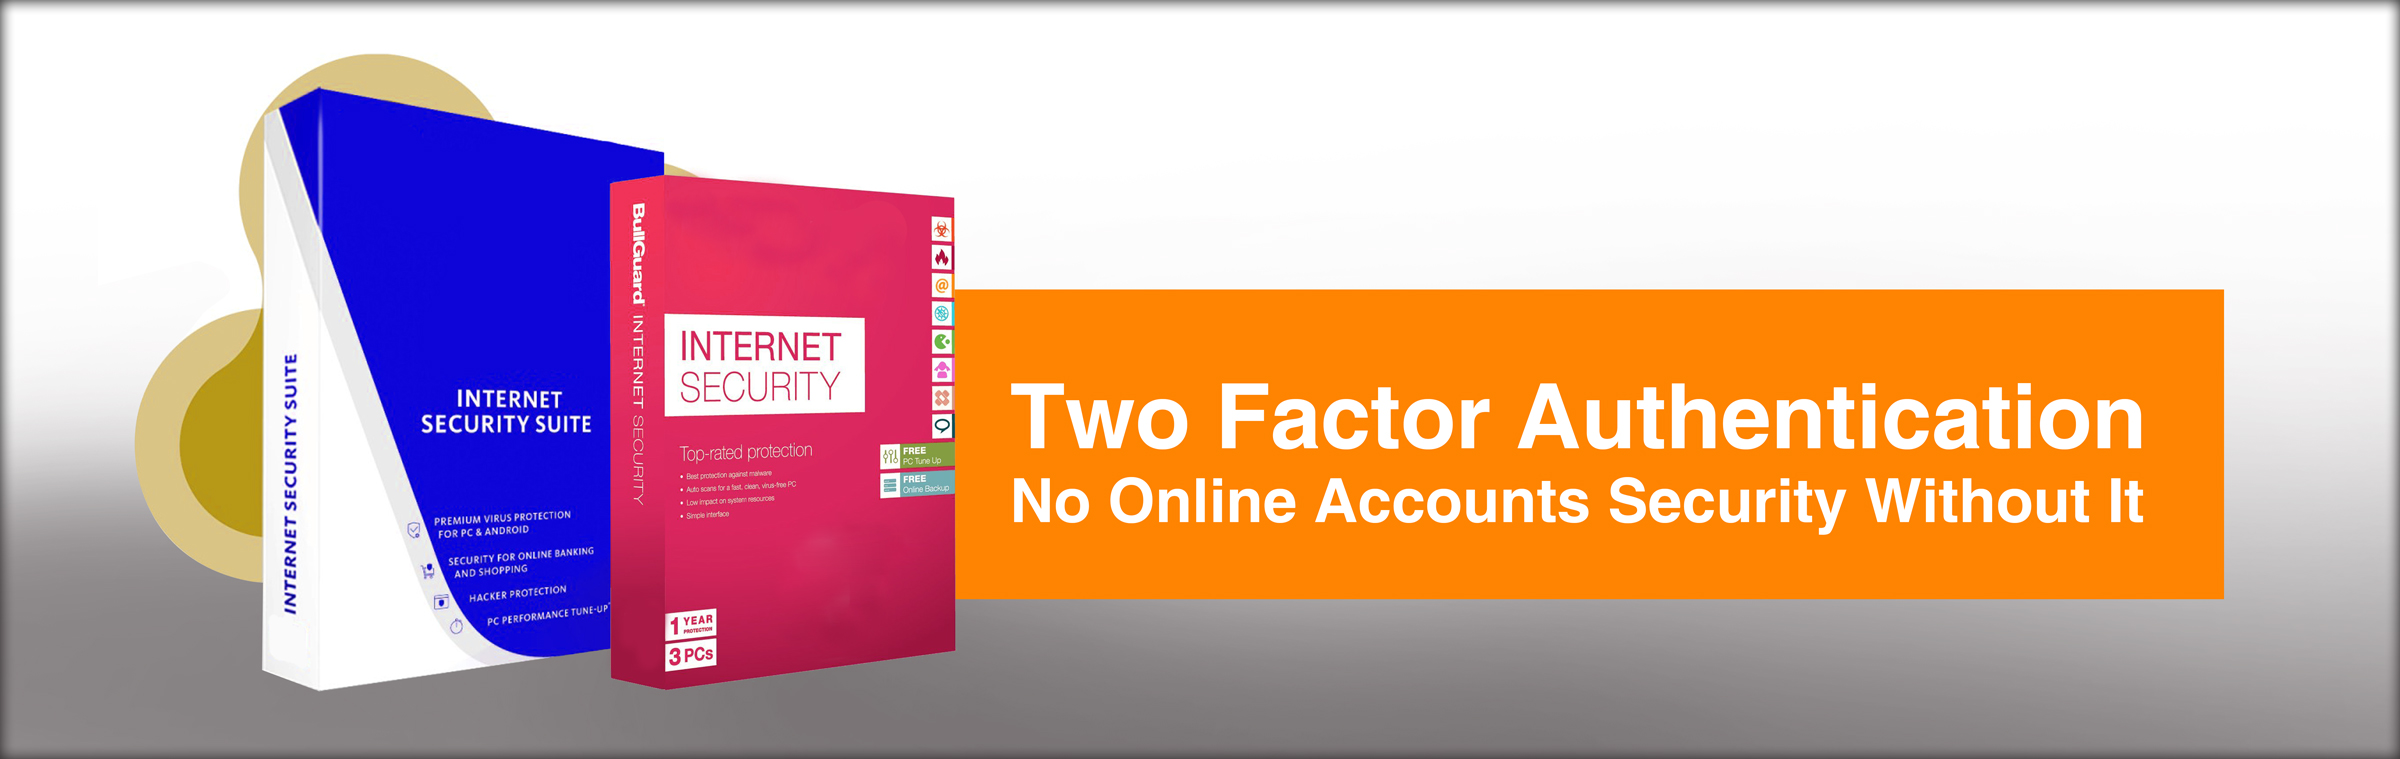 Two Factor Authentication: No Online Accounts Security Without It